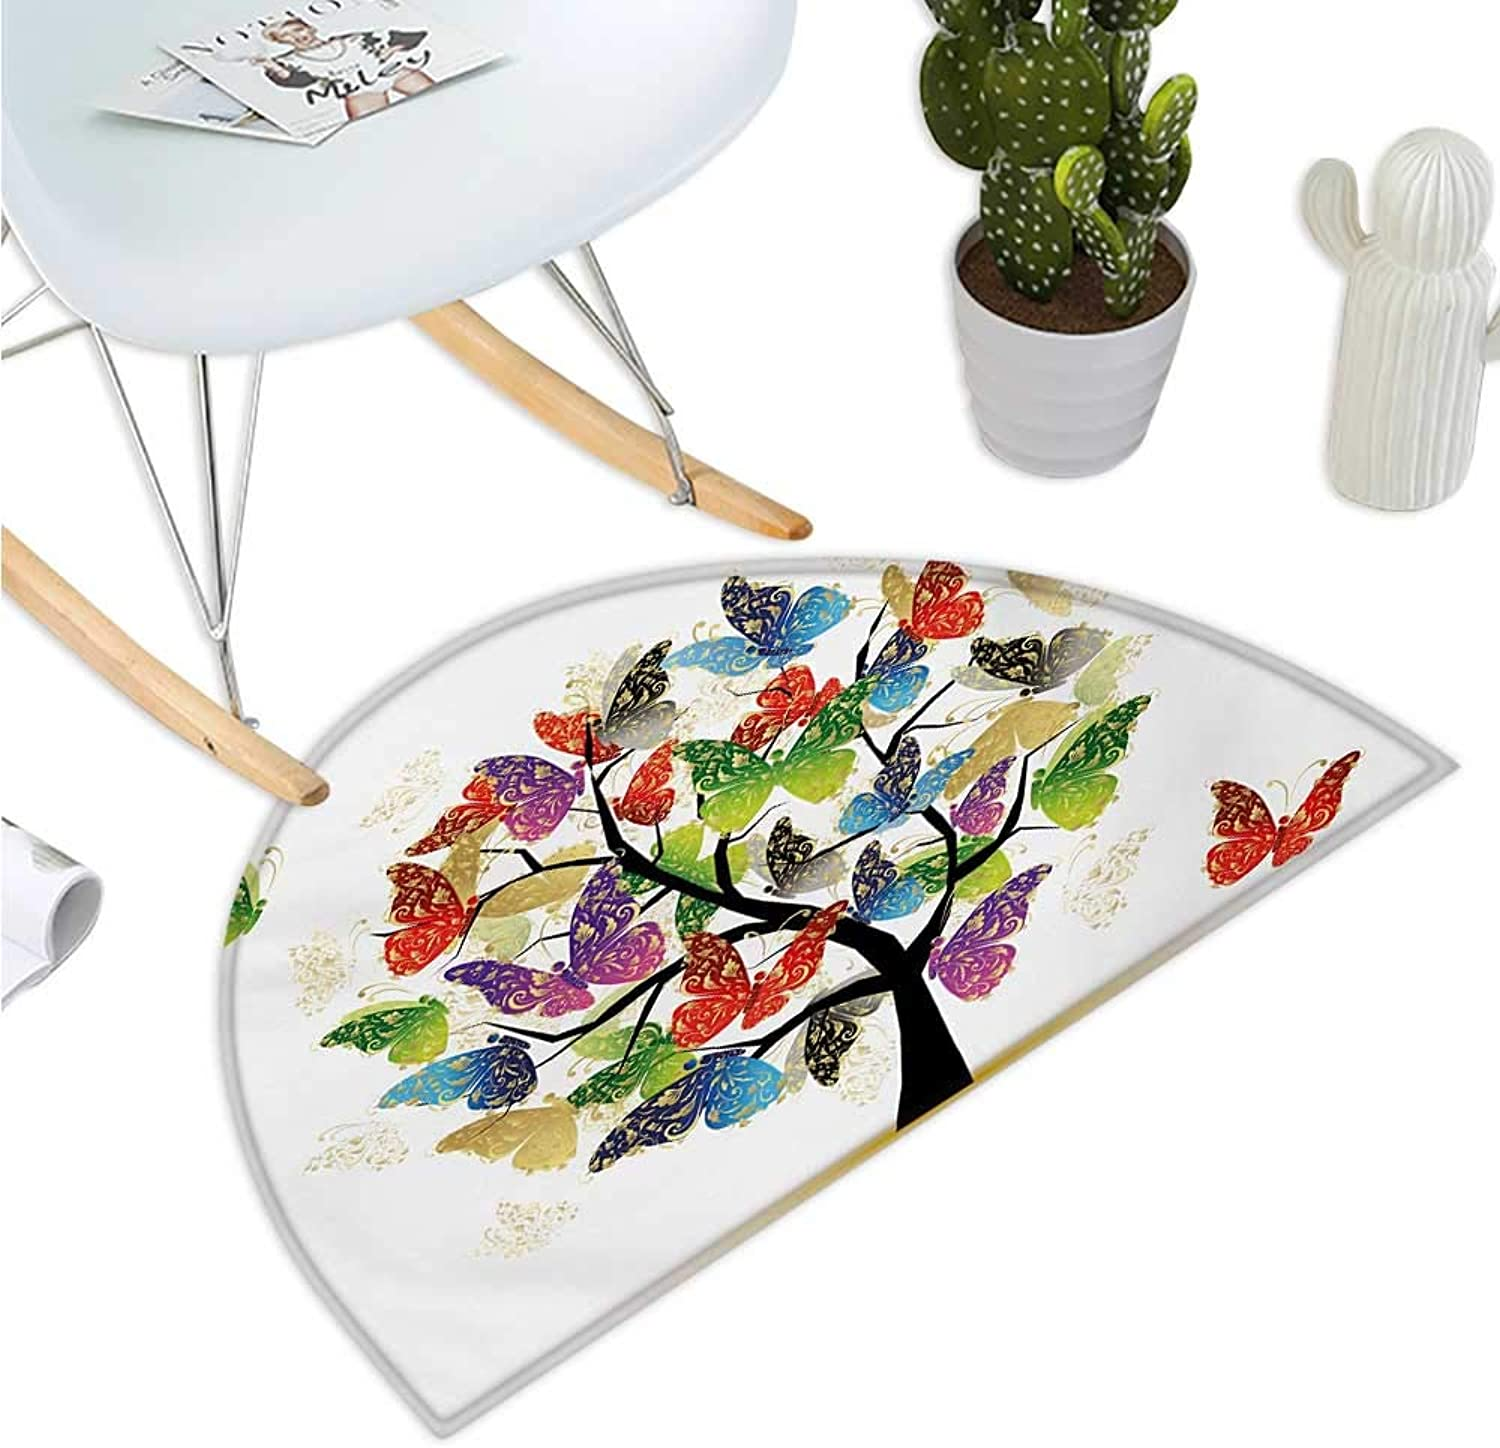 Modern Semicircle Doormat Artistic Nature Tree with Floral Butterflies Leaves Vivid Vibrant Artwork Print Halfmoon doormats H 47.2  xD 70.8  Multicolor